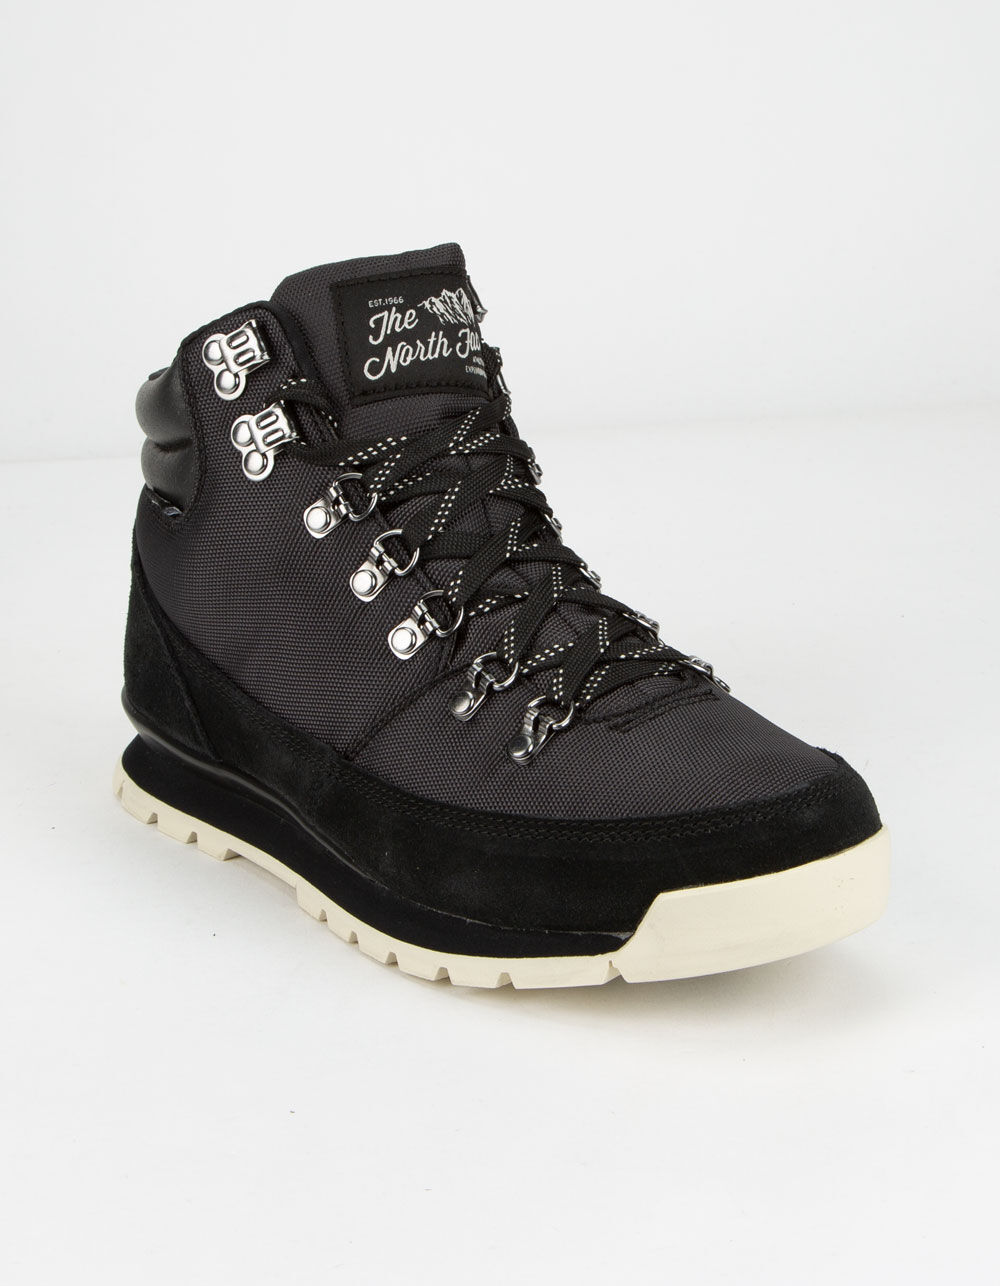 THE NORTH FACE Back-To-Berkeley Redux TNF Black & Vintage White Boots